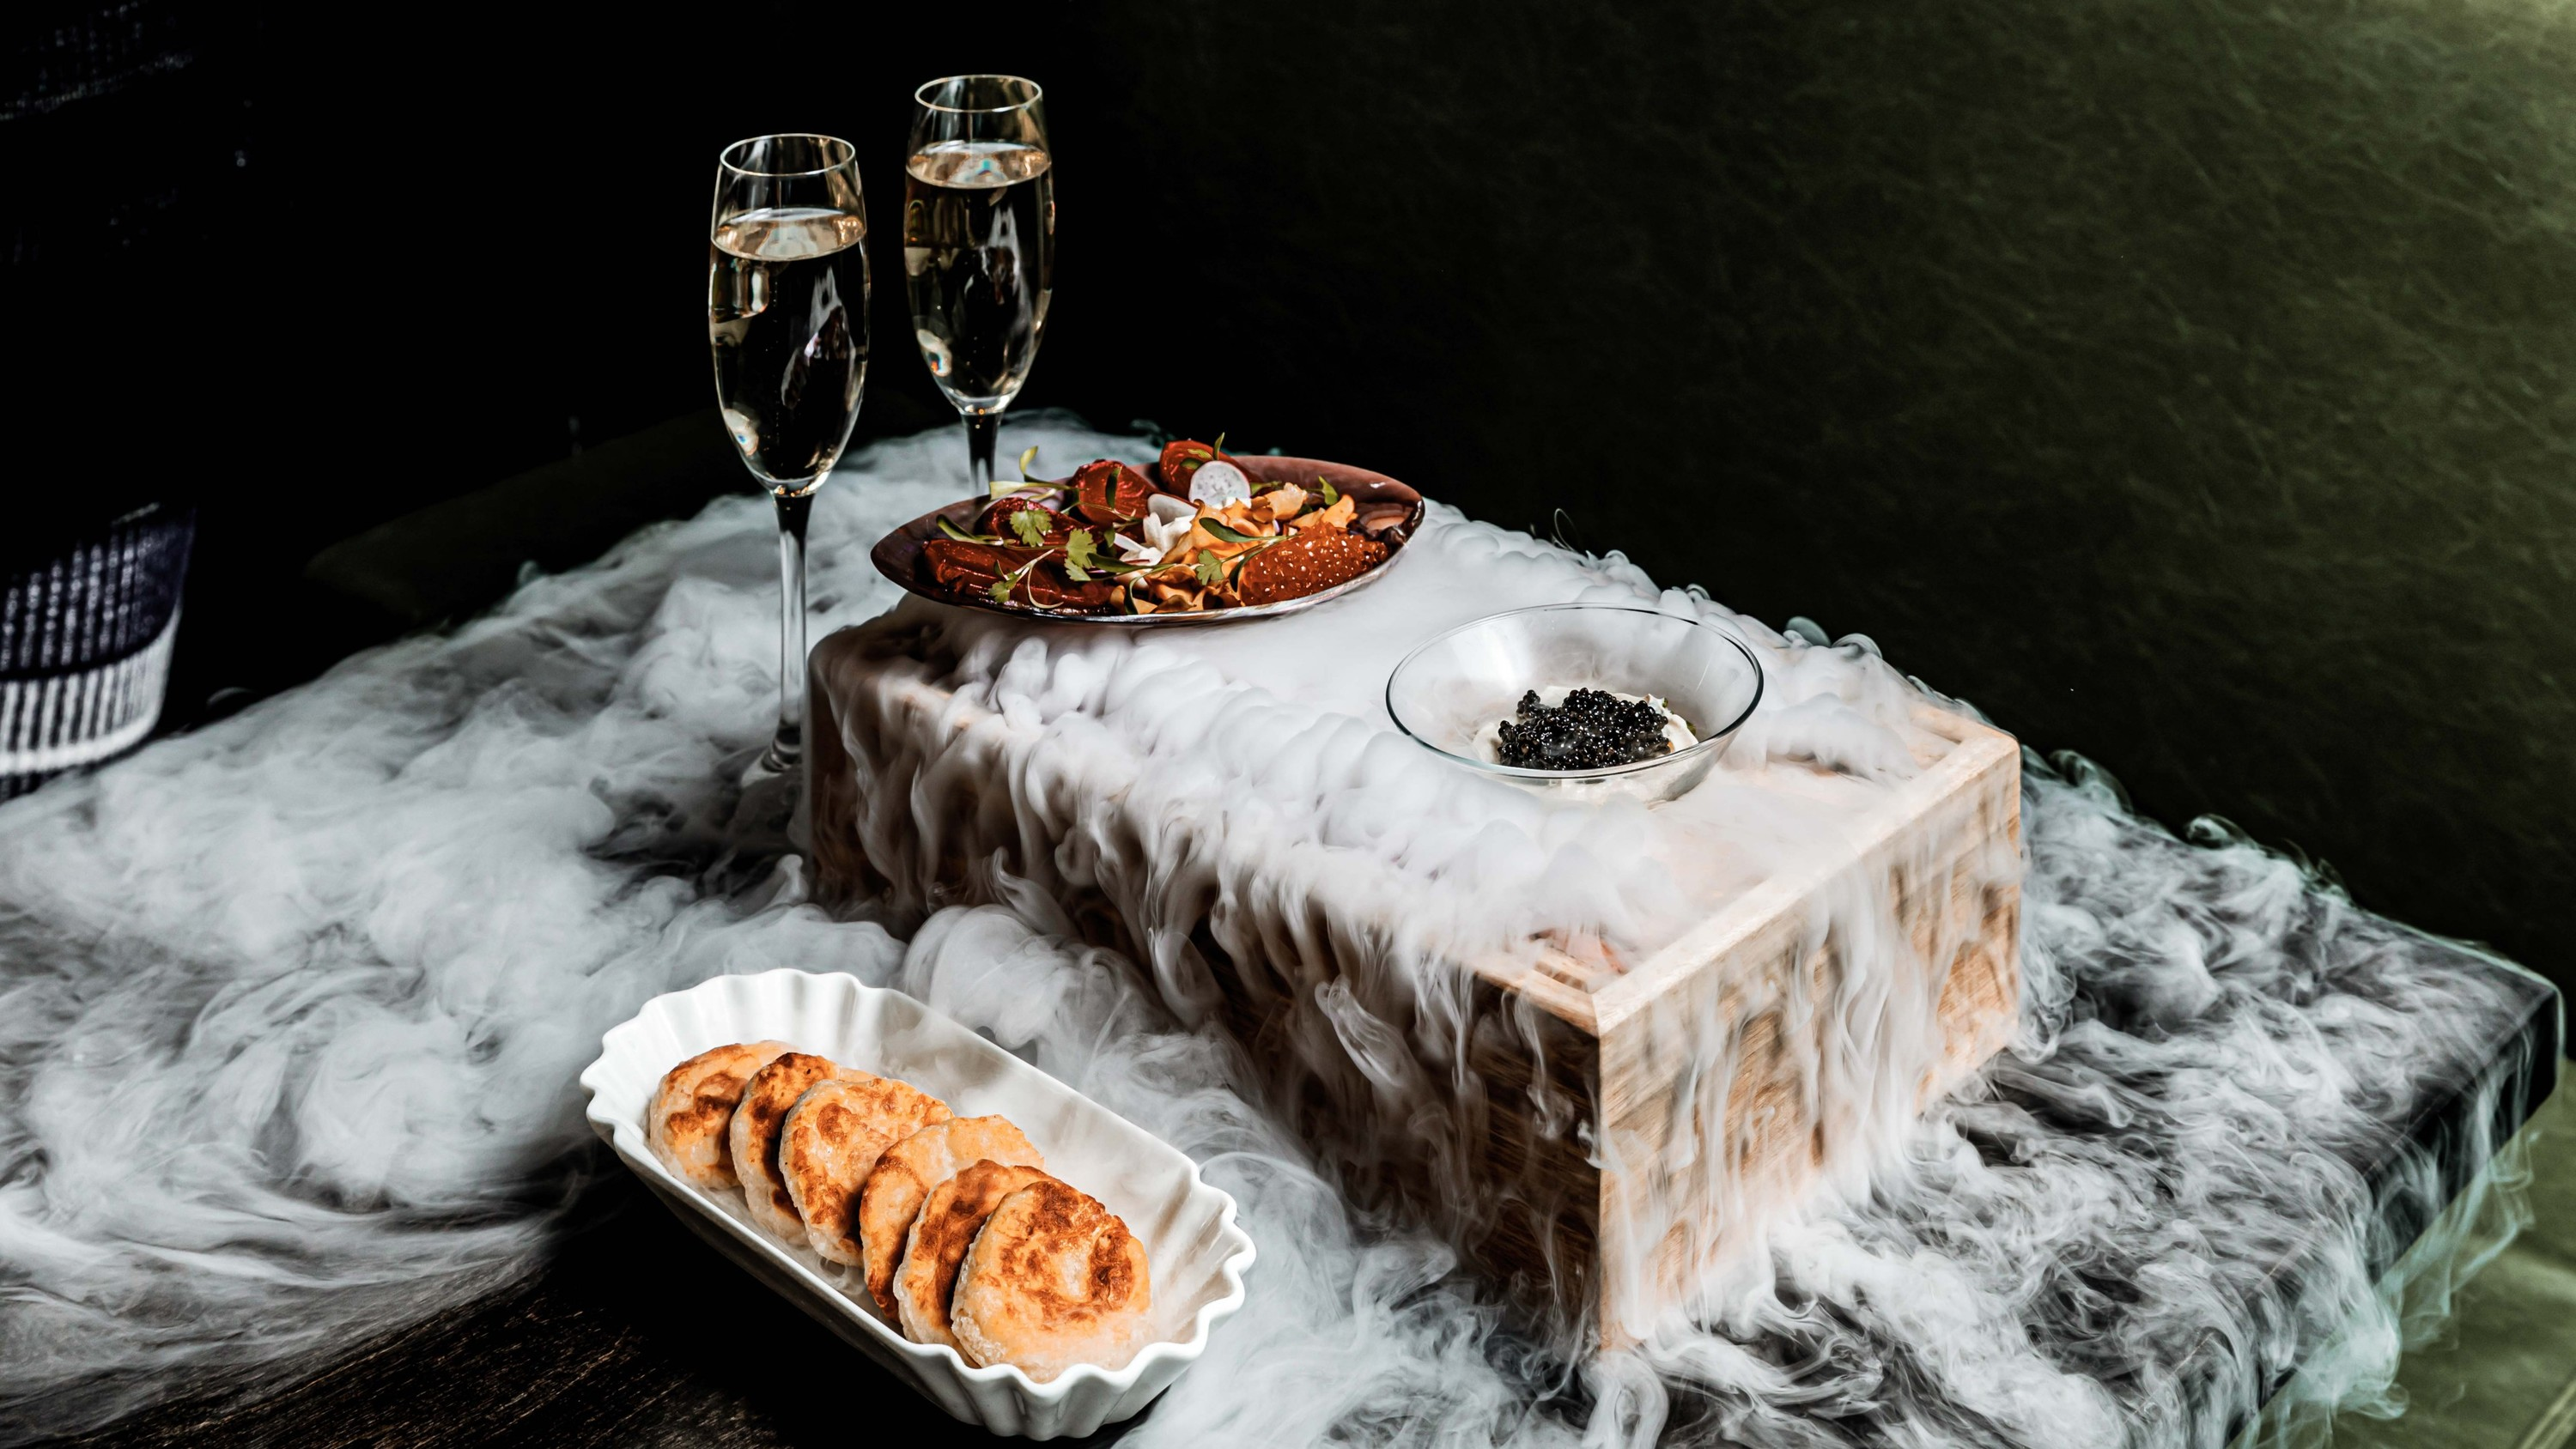 Feast on chilled caviar and flowing Spritzes at Hello Auntie's new bottomless brunch